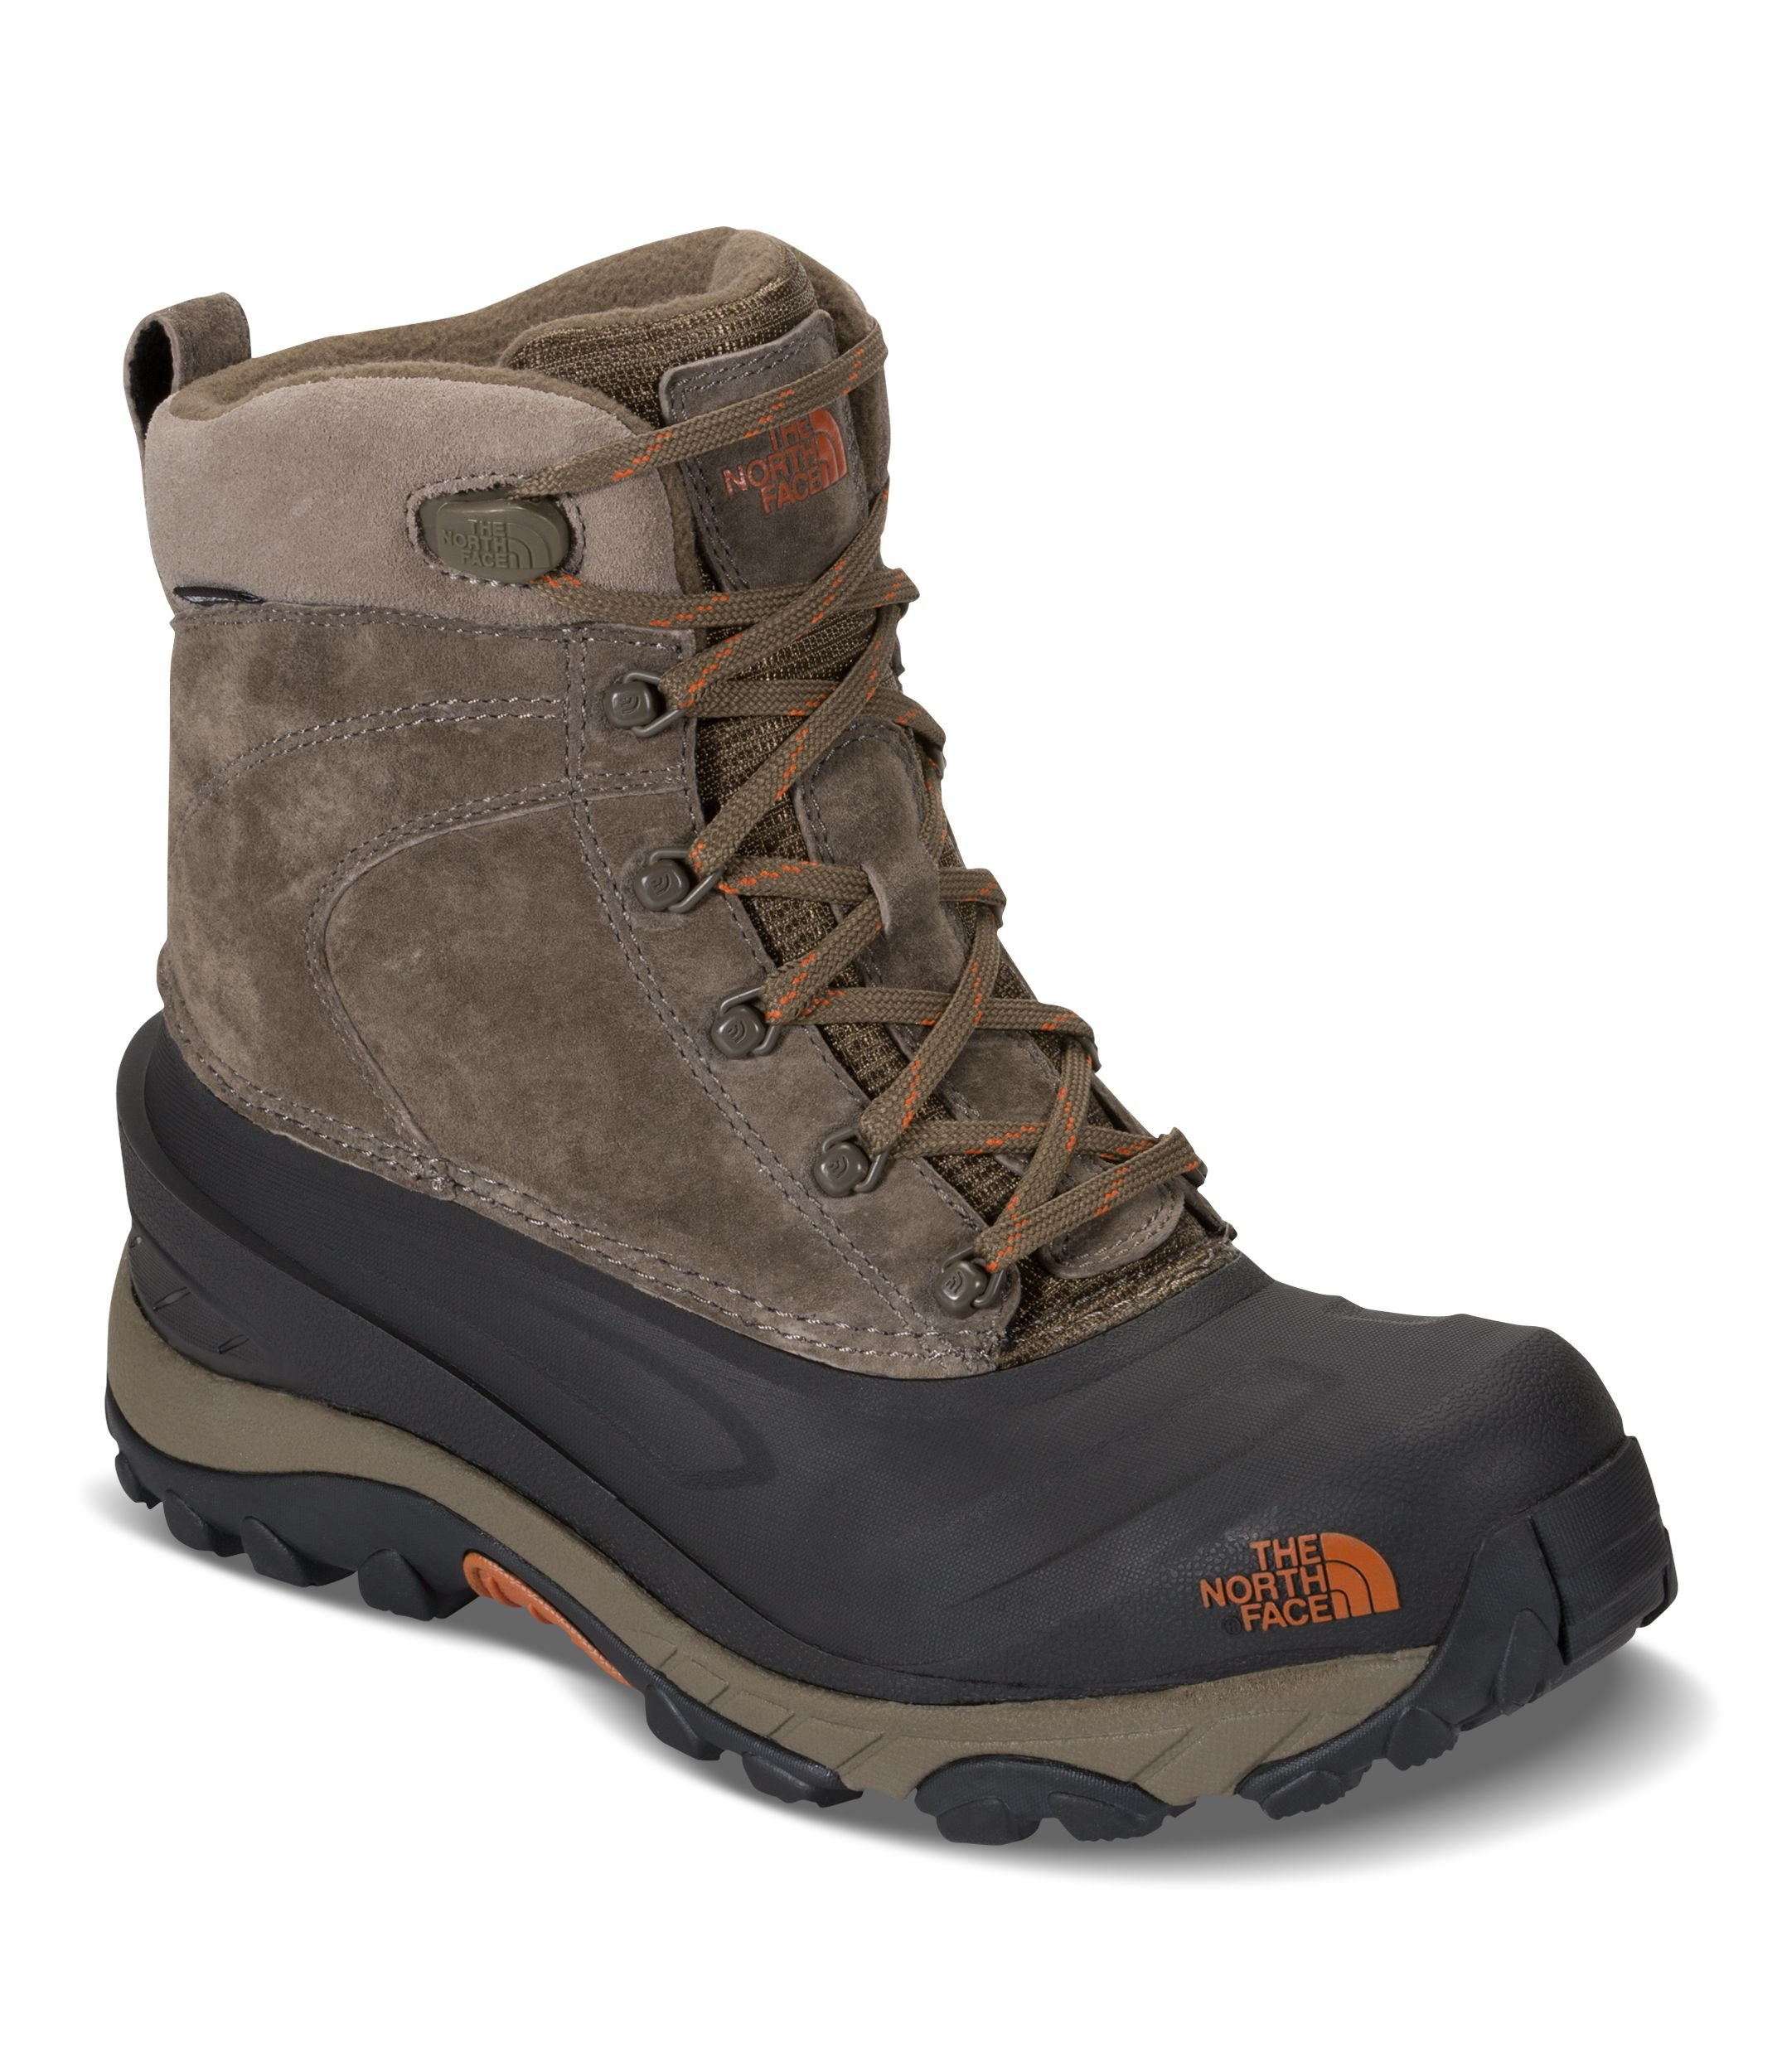 The North Face Men's Chilkat III - Mudpack Brown & Bombay Orange - 7 by The North Face